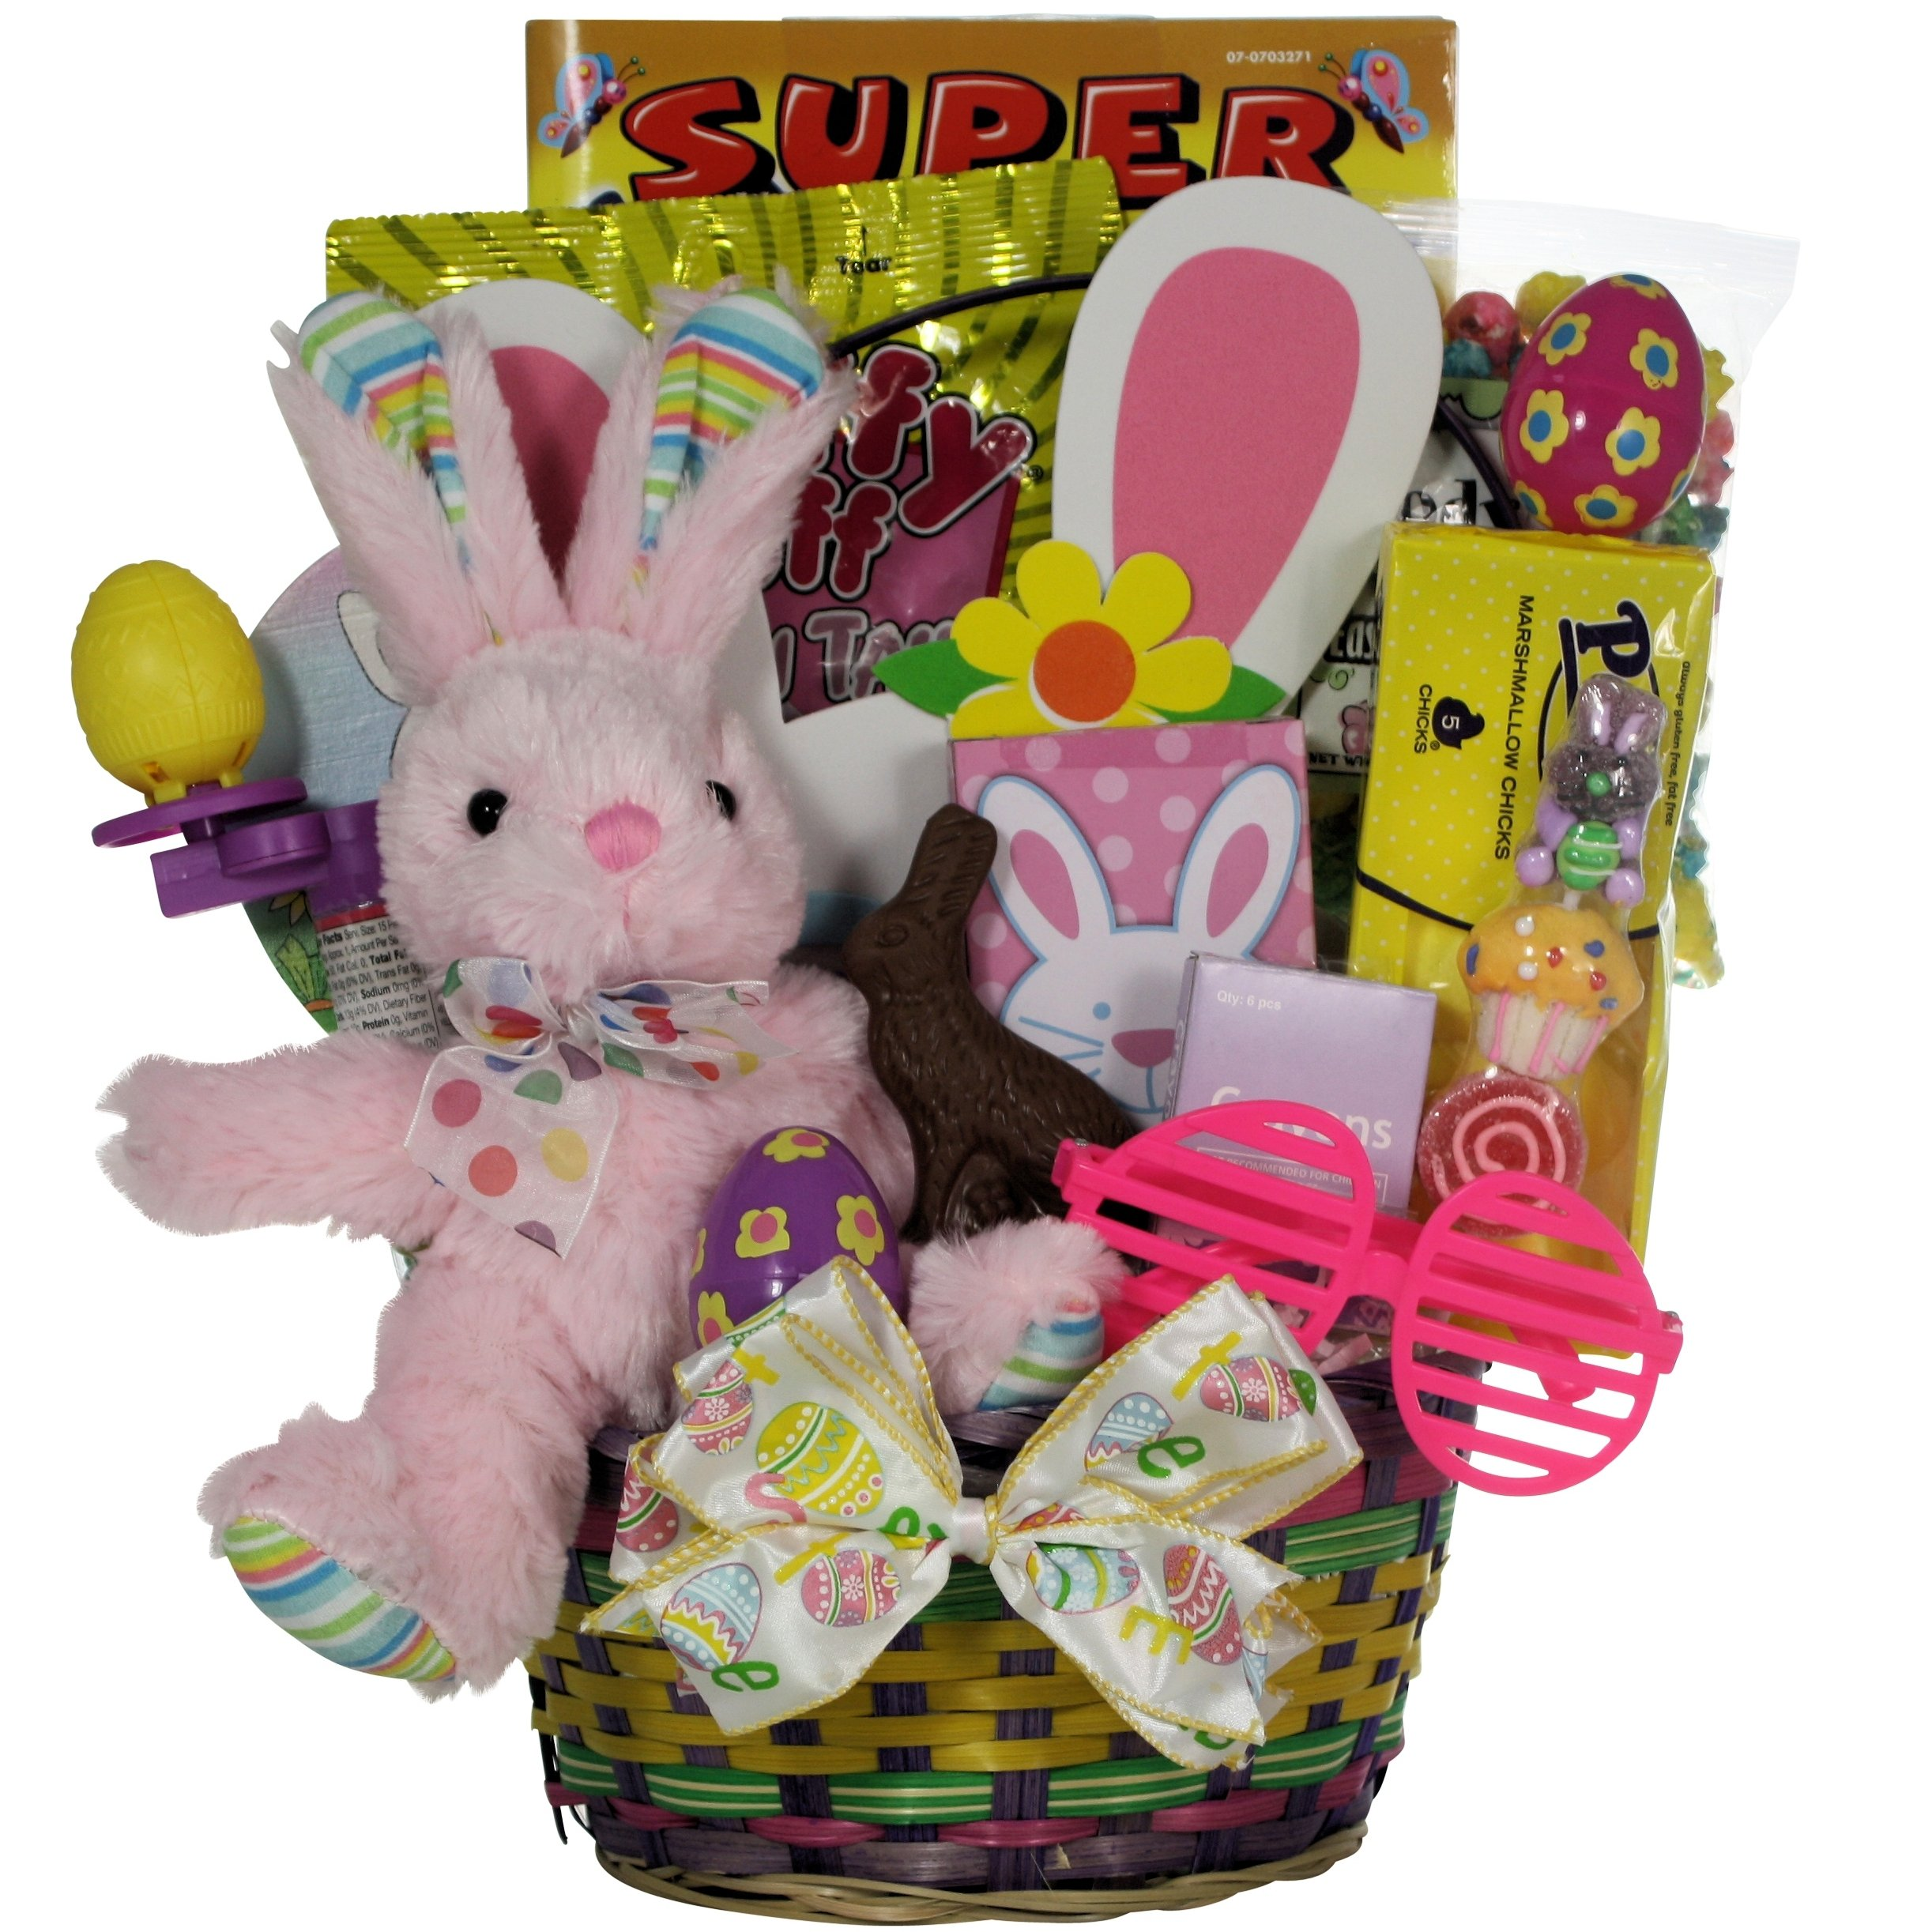 Amazon greatarrivals hoppin easter fun boy childs basket 3 greatarrivals gift baskets hoppin fun girl childs easter basket negle Images